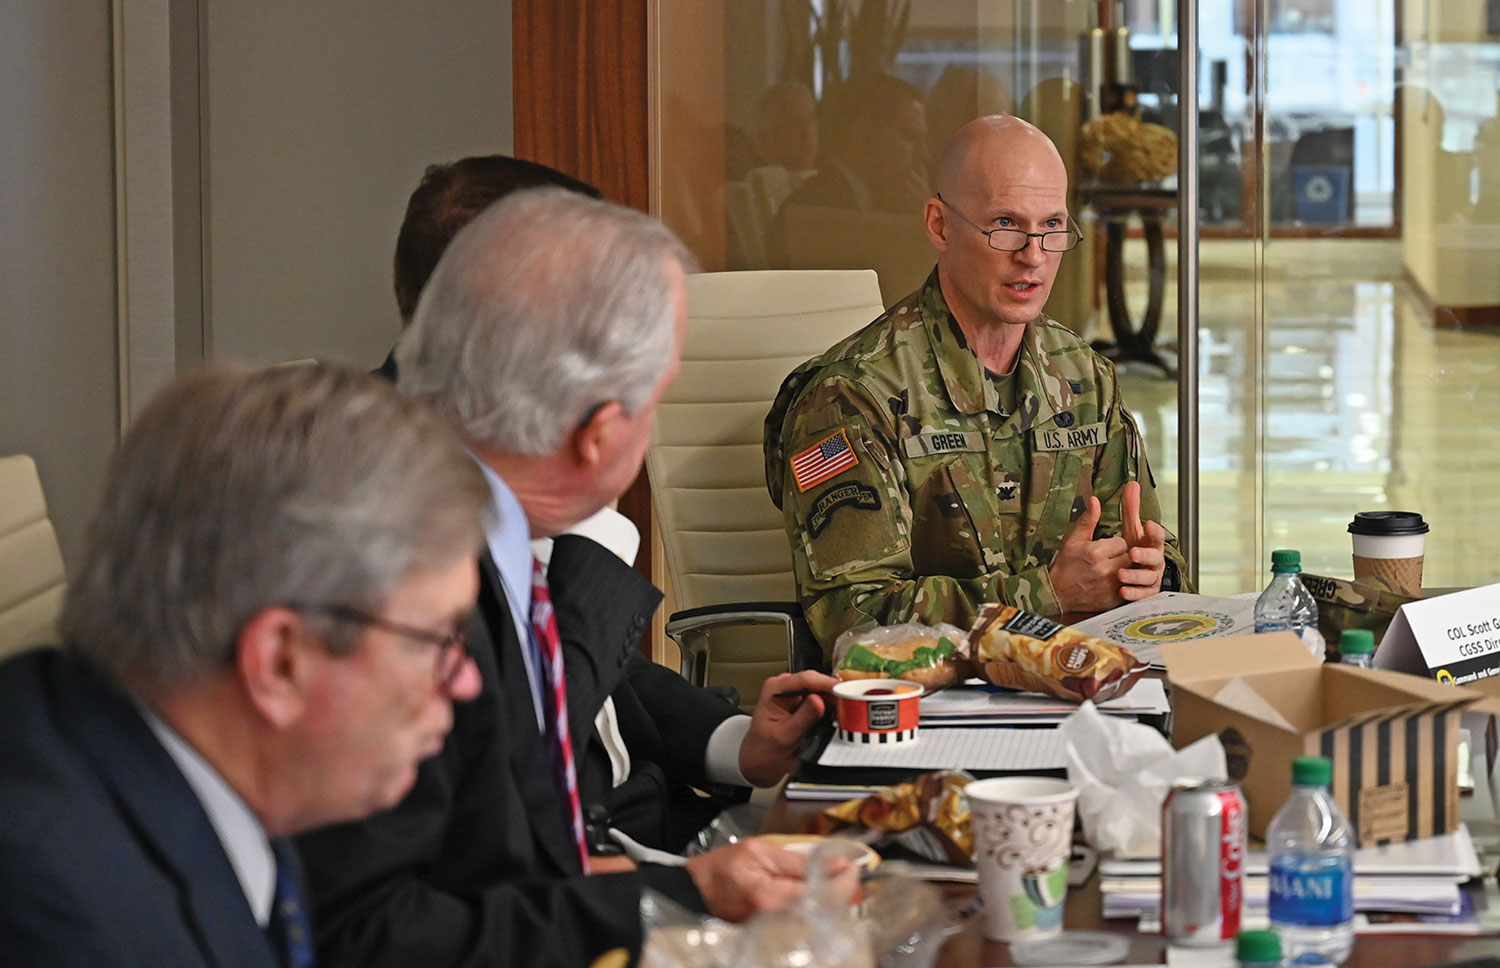 Col. Scott Green, director of the Command and General Staff School, provides Foundation trustees with an overview briefing on the College during the board meeting Dec. 4, 2019. (photos by Mark H. Wiggins)